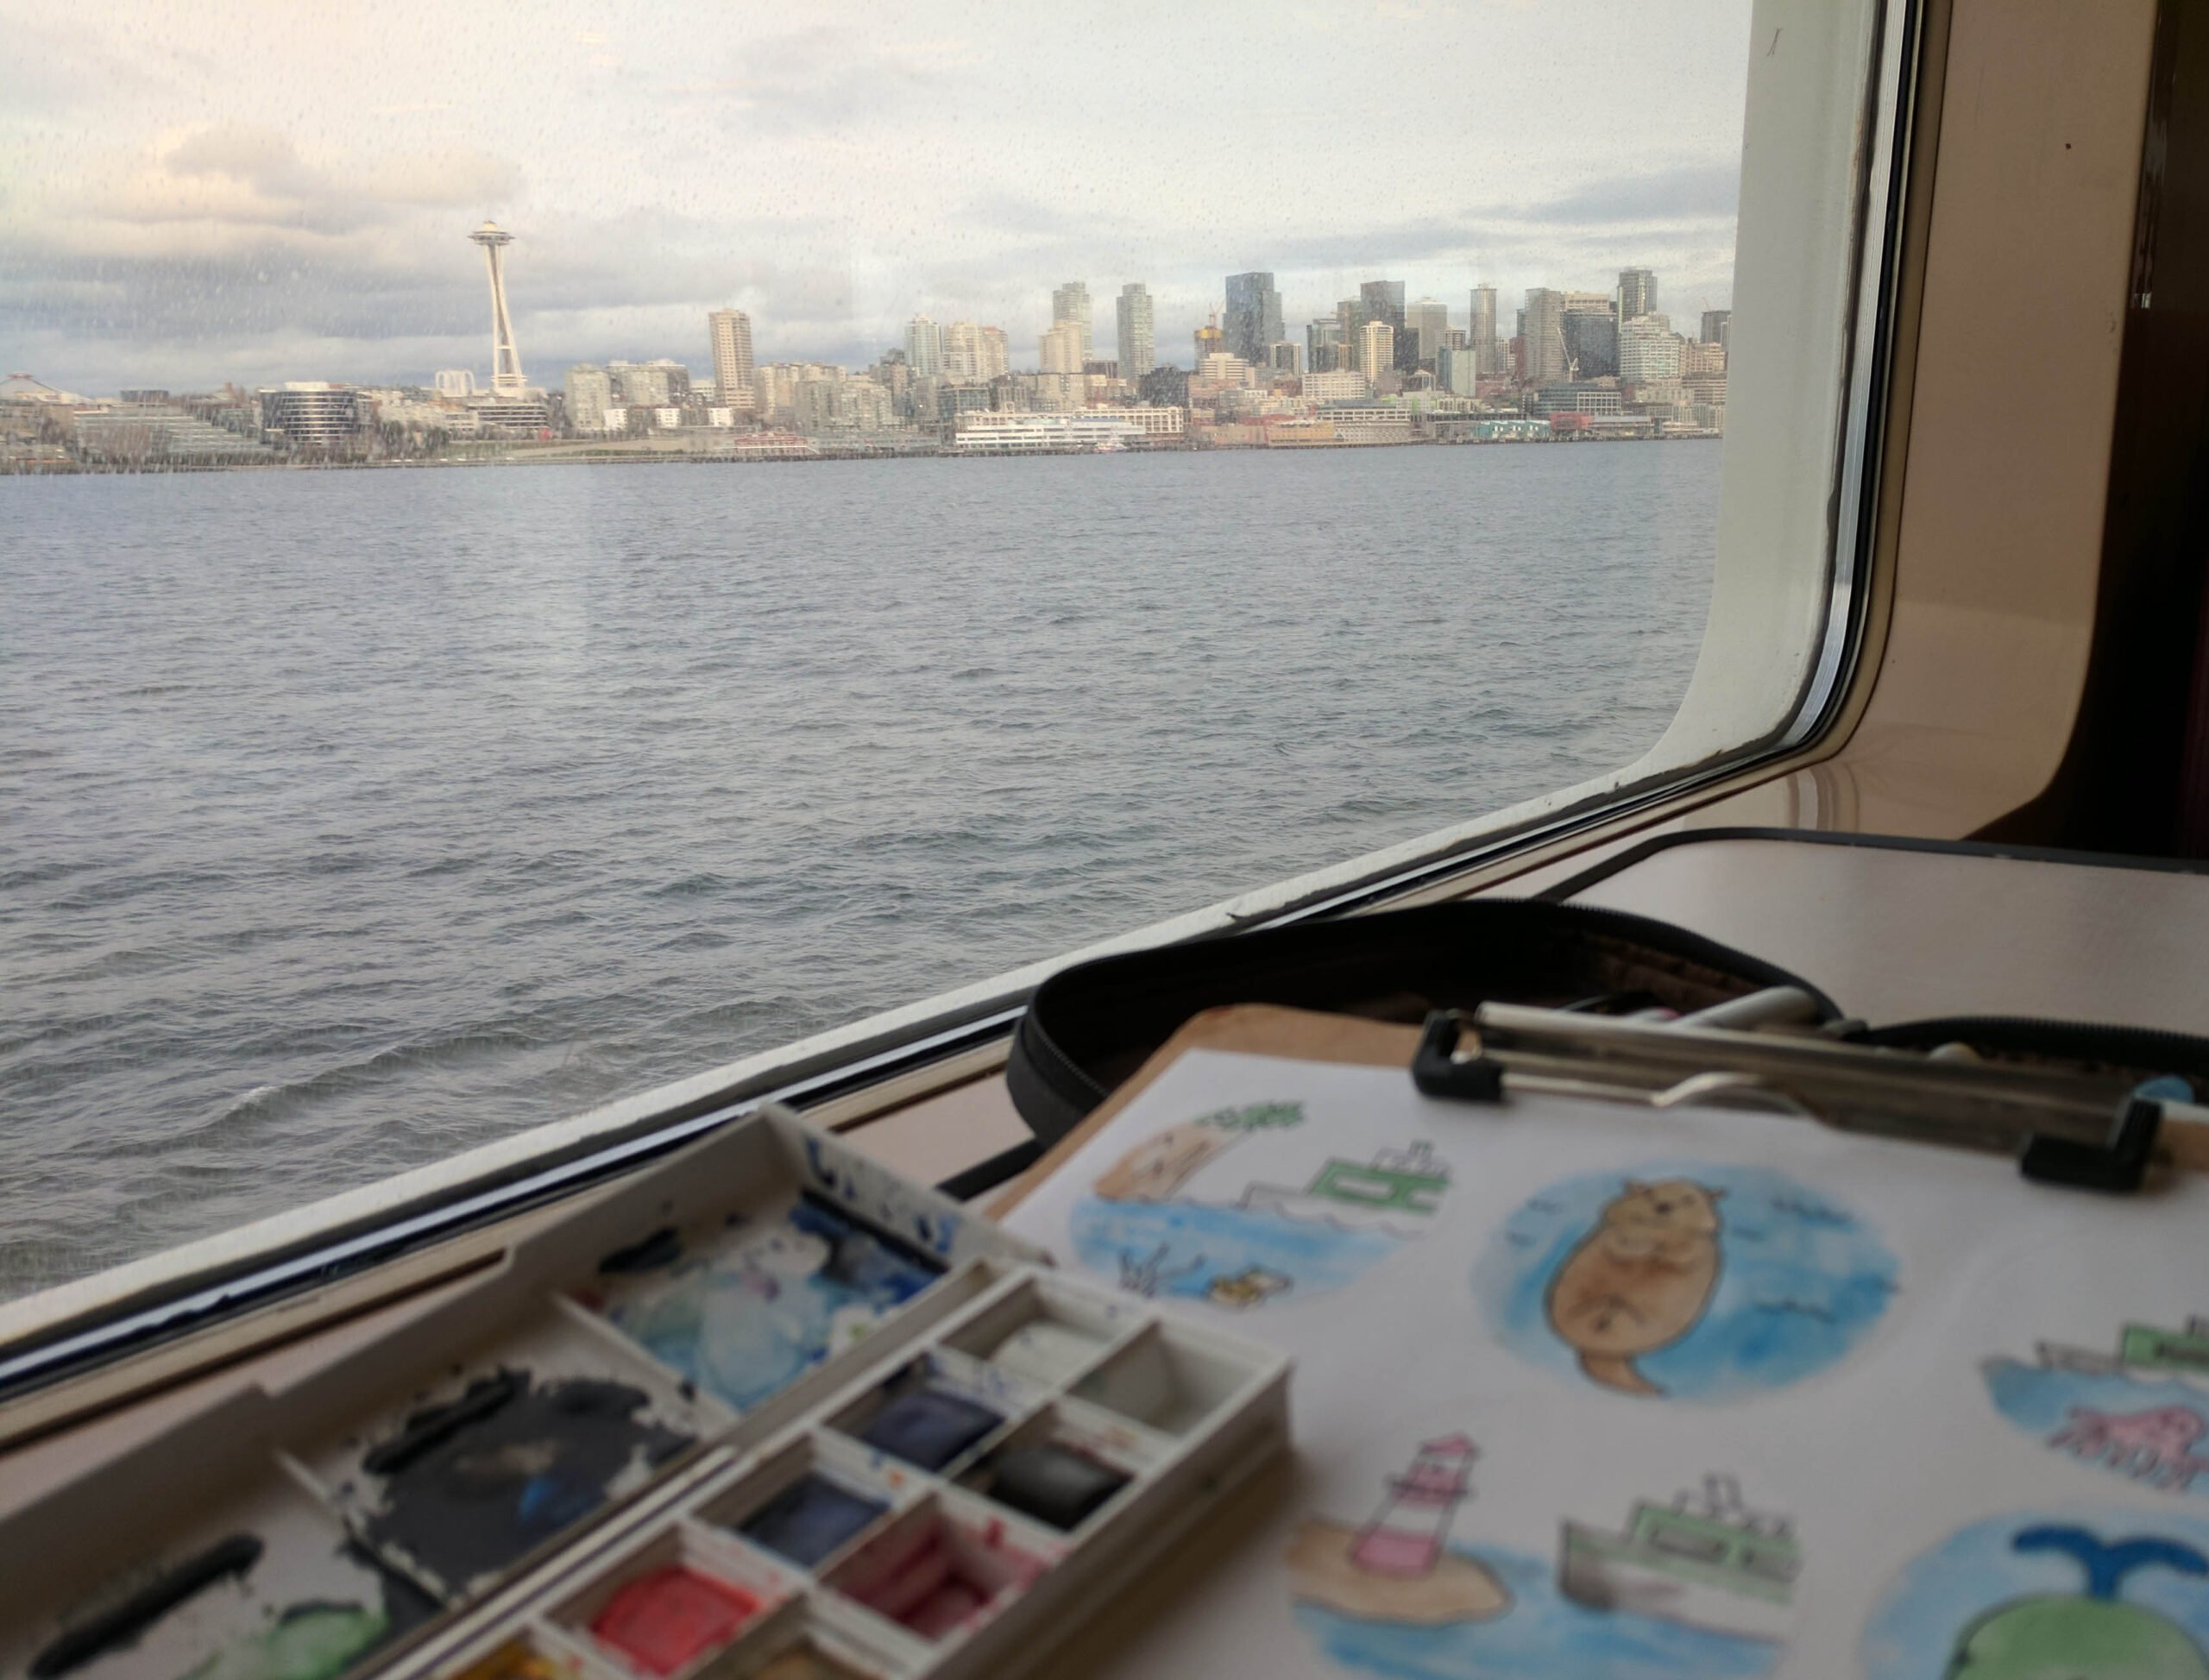 The space needle as seen from the bainbridge return washington state ferry.